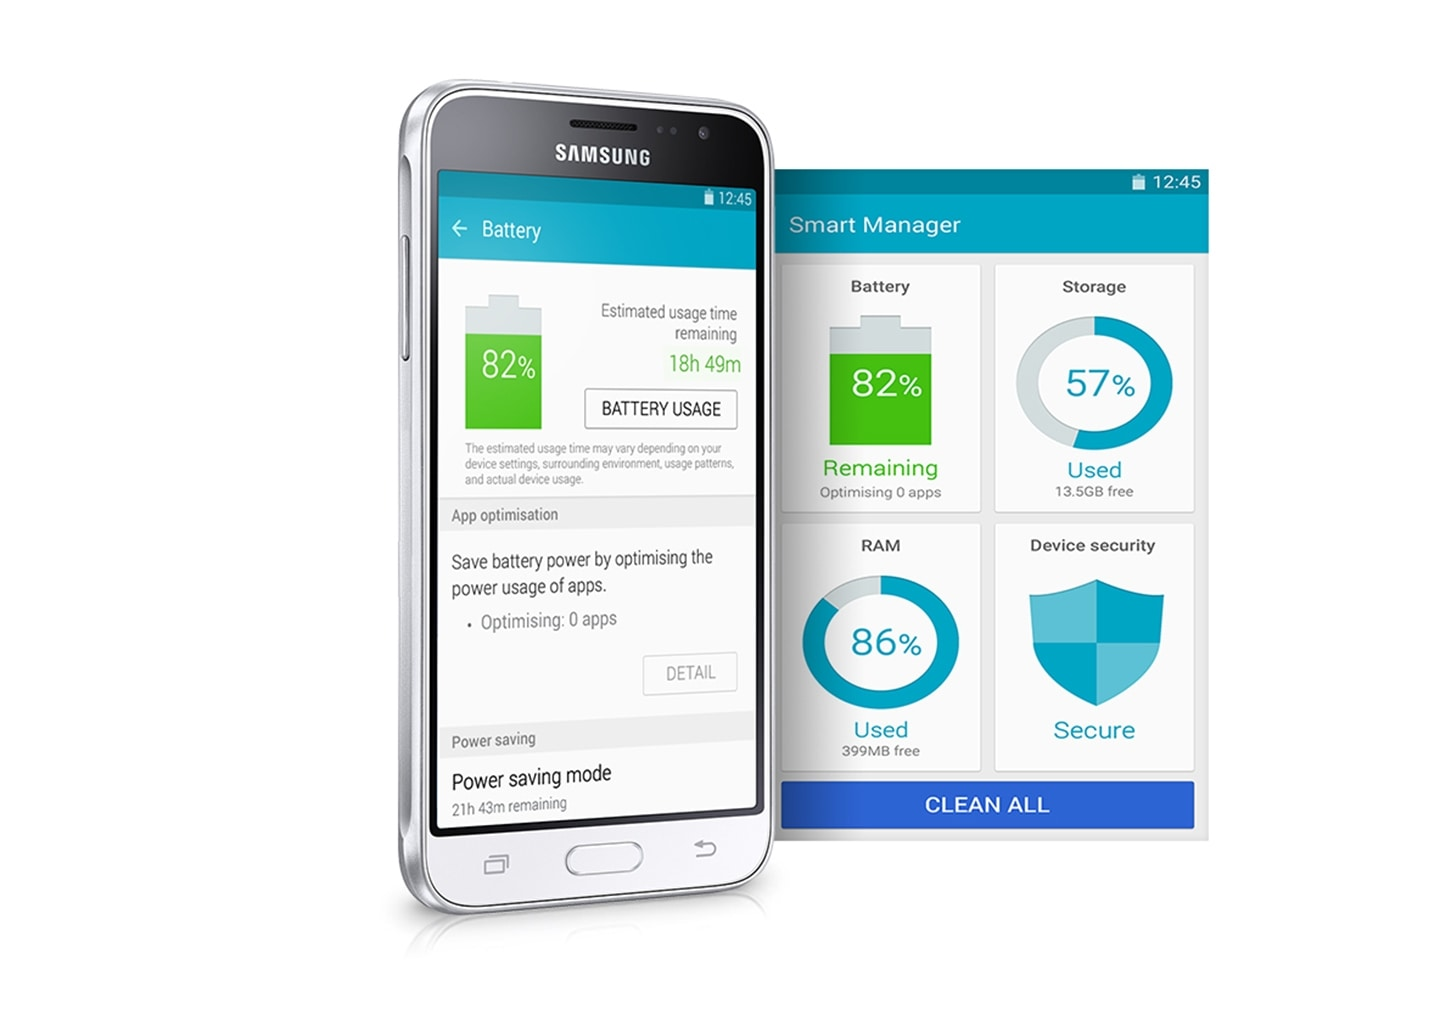 Samsung Galaxy J3 2016 Black Price And Specs Au J320 Take Control Of Your Device At A Glance With Smart Manager Access The Status Phones Battery Storage Ram Usage Security Ease